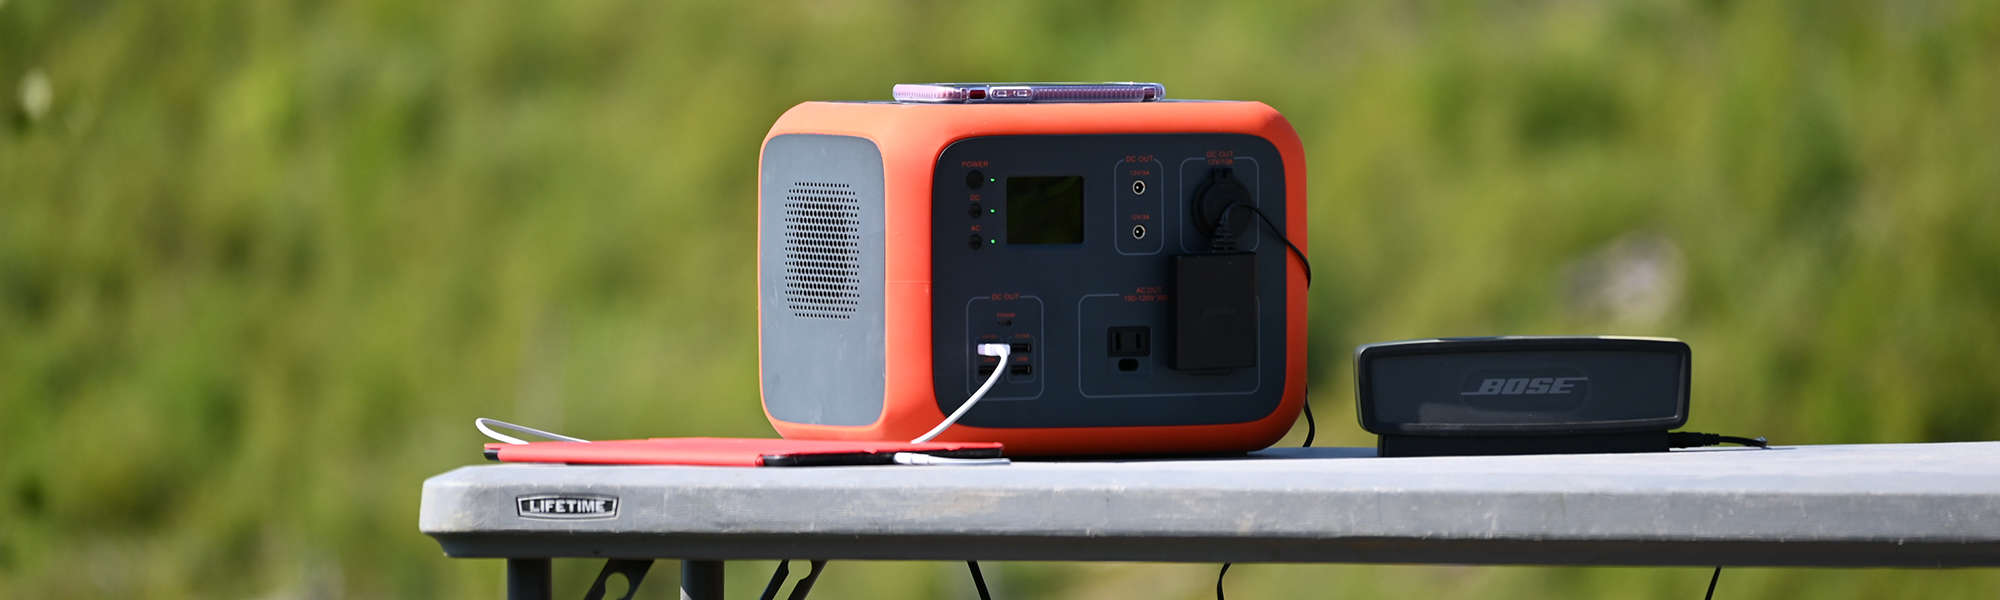 maxoak bluetti ac50 portable power station